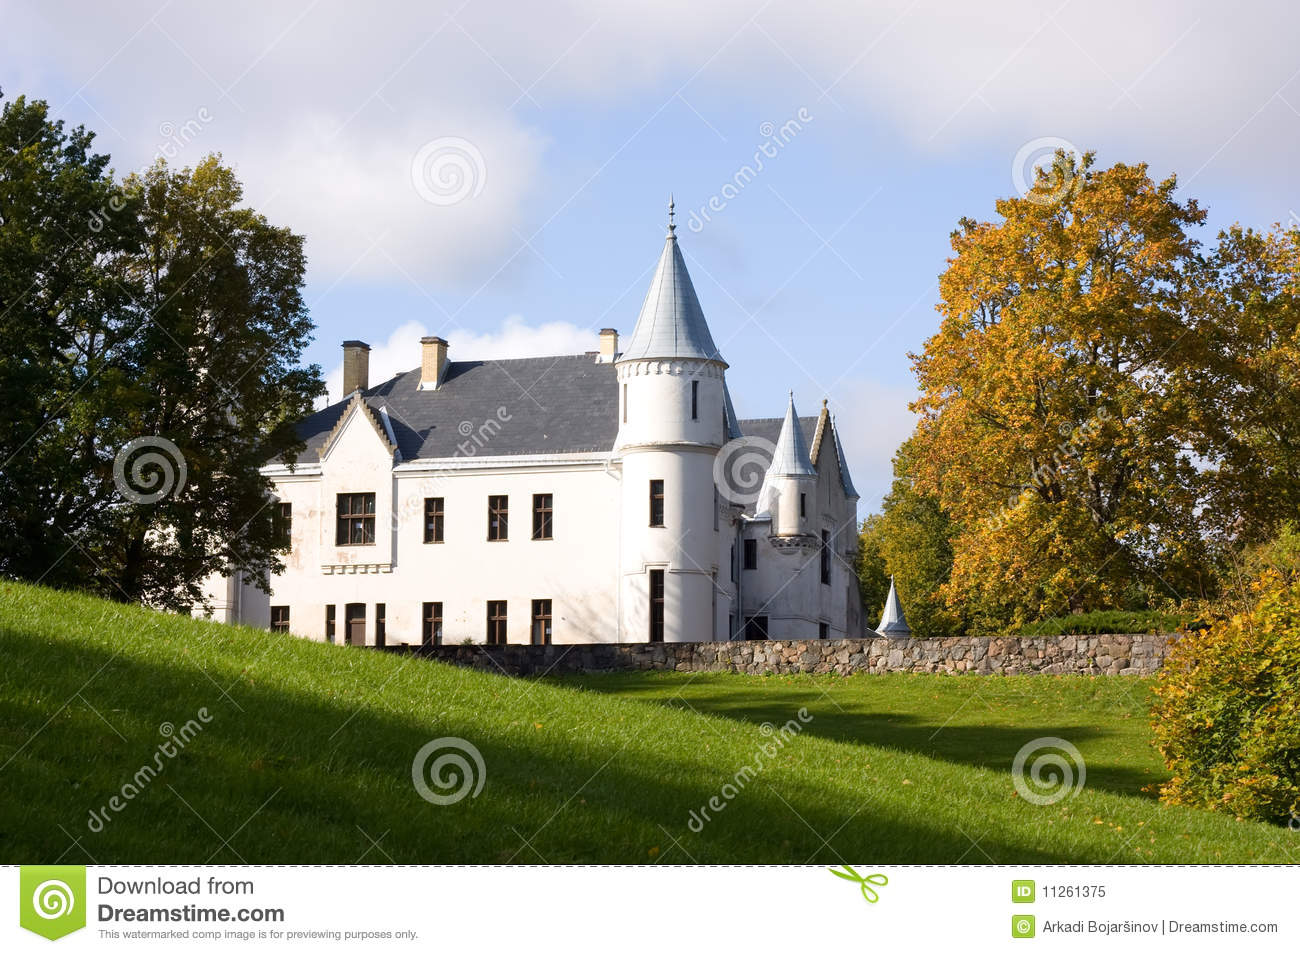 Small castle babelsberg park stock image cartoondealer for Small chateau